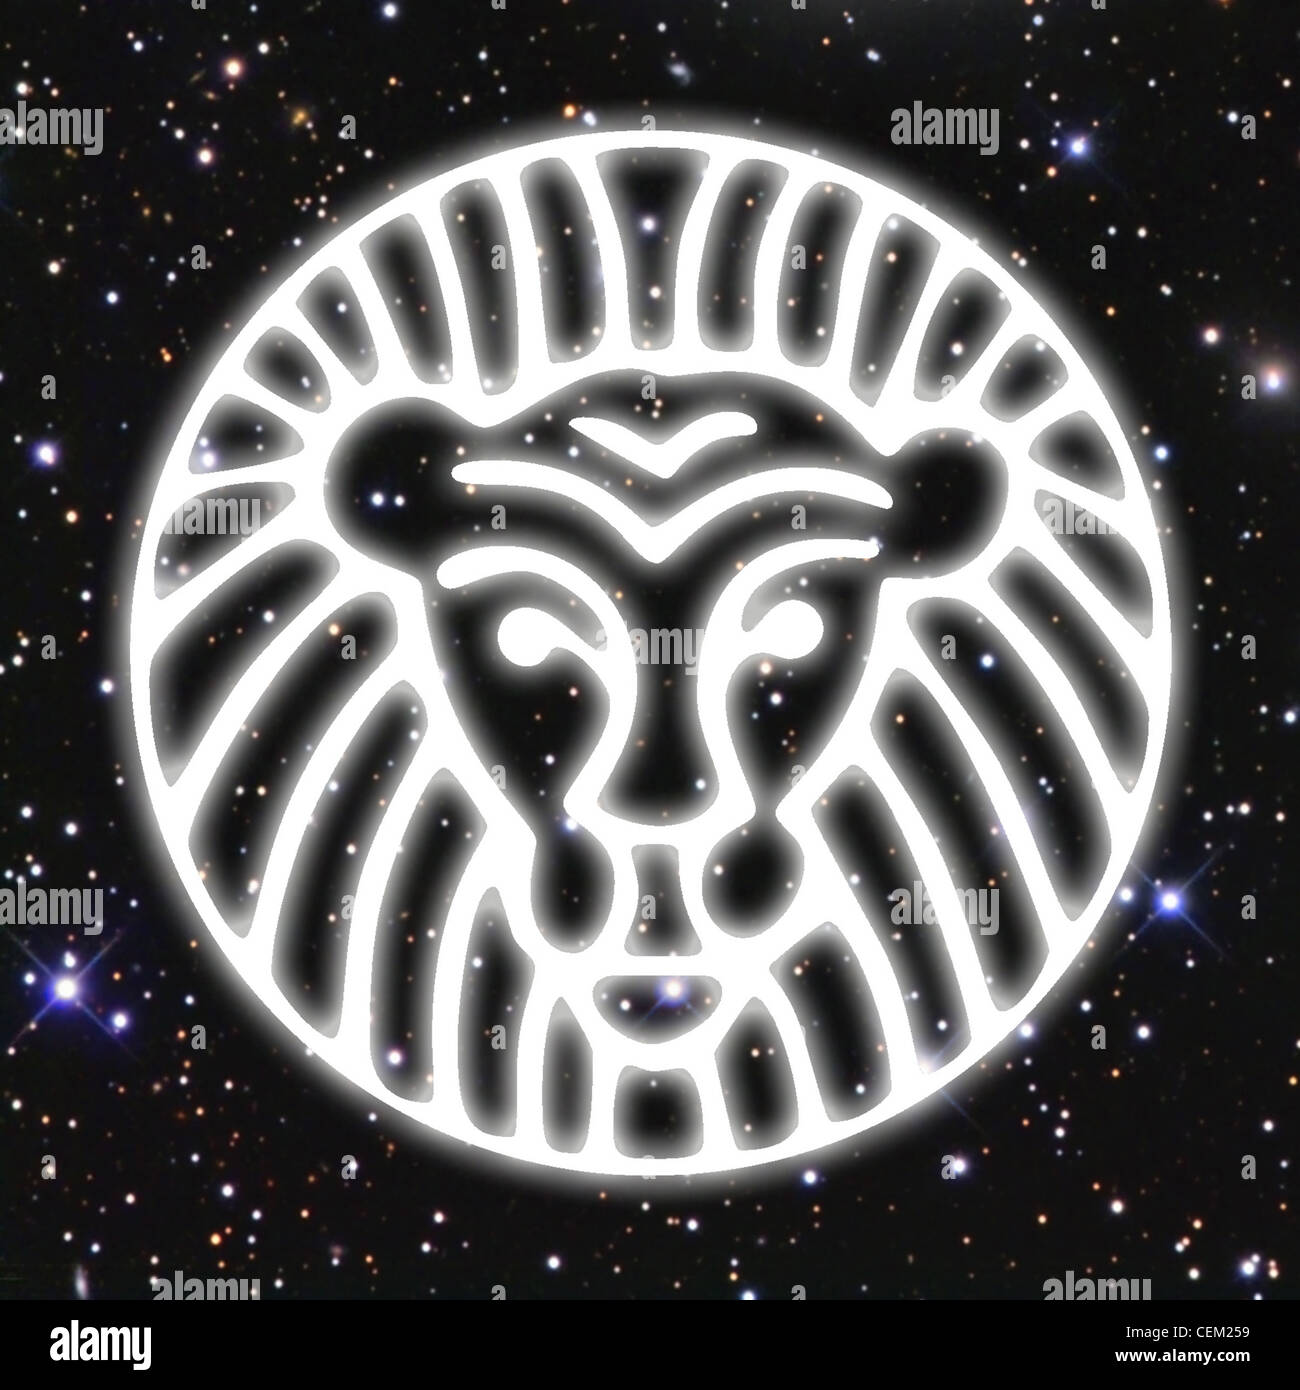 An illustration of a white line drawing of a lion's head, set against a background of space filled with stars - Stock Image